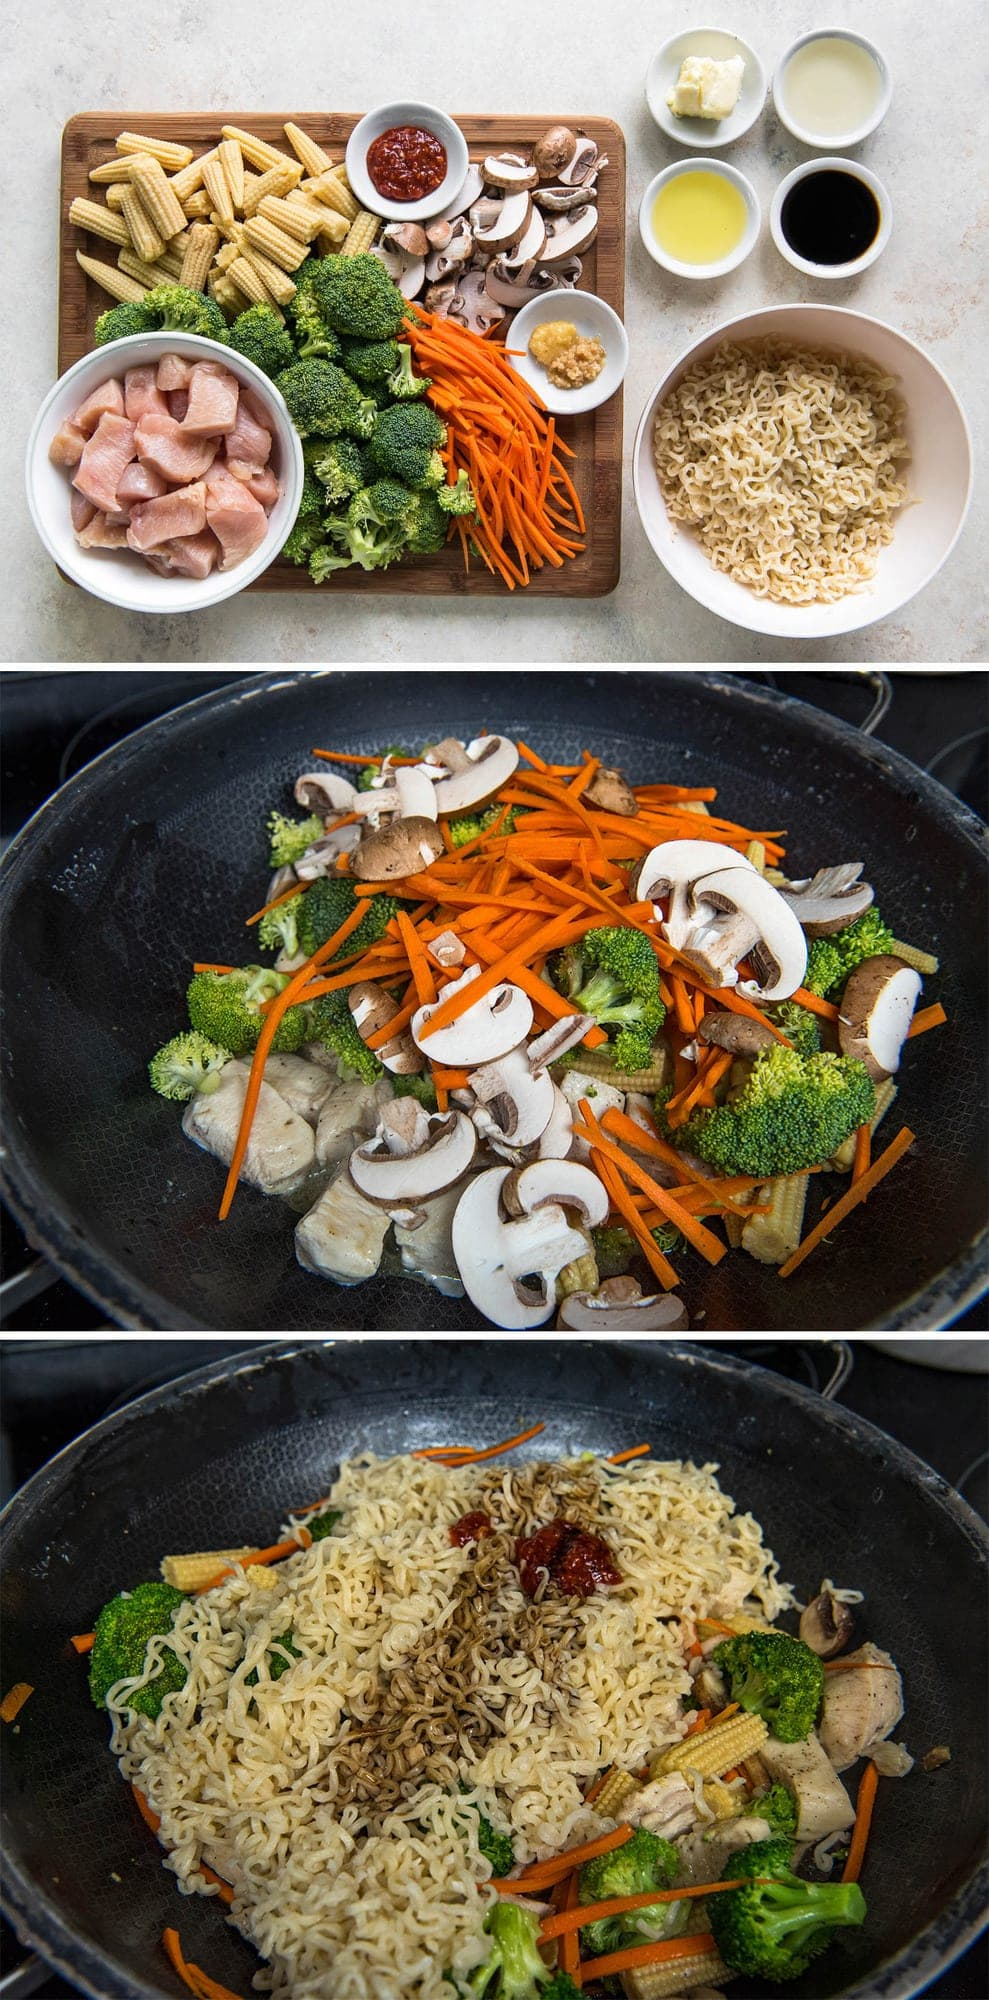 collage of 3 images featuring steps for making ramen stir fry, including ingredients